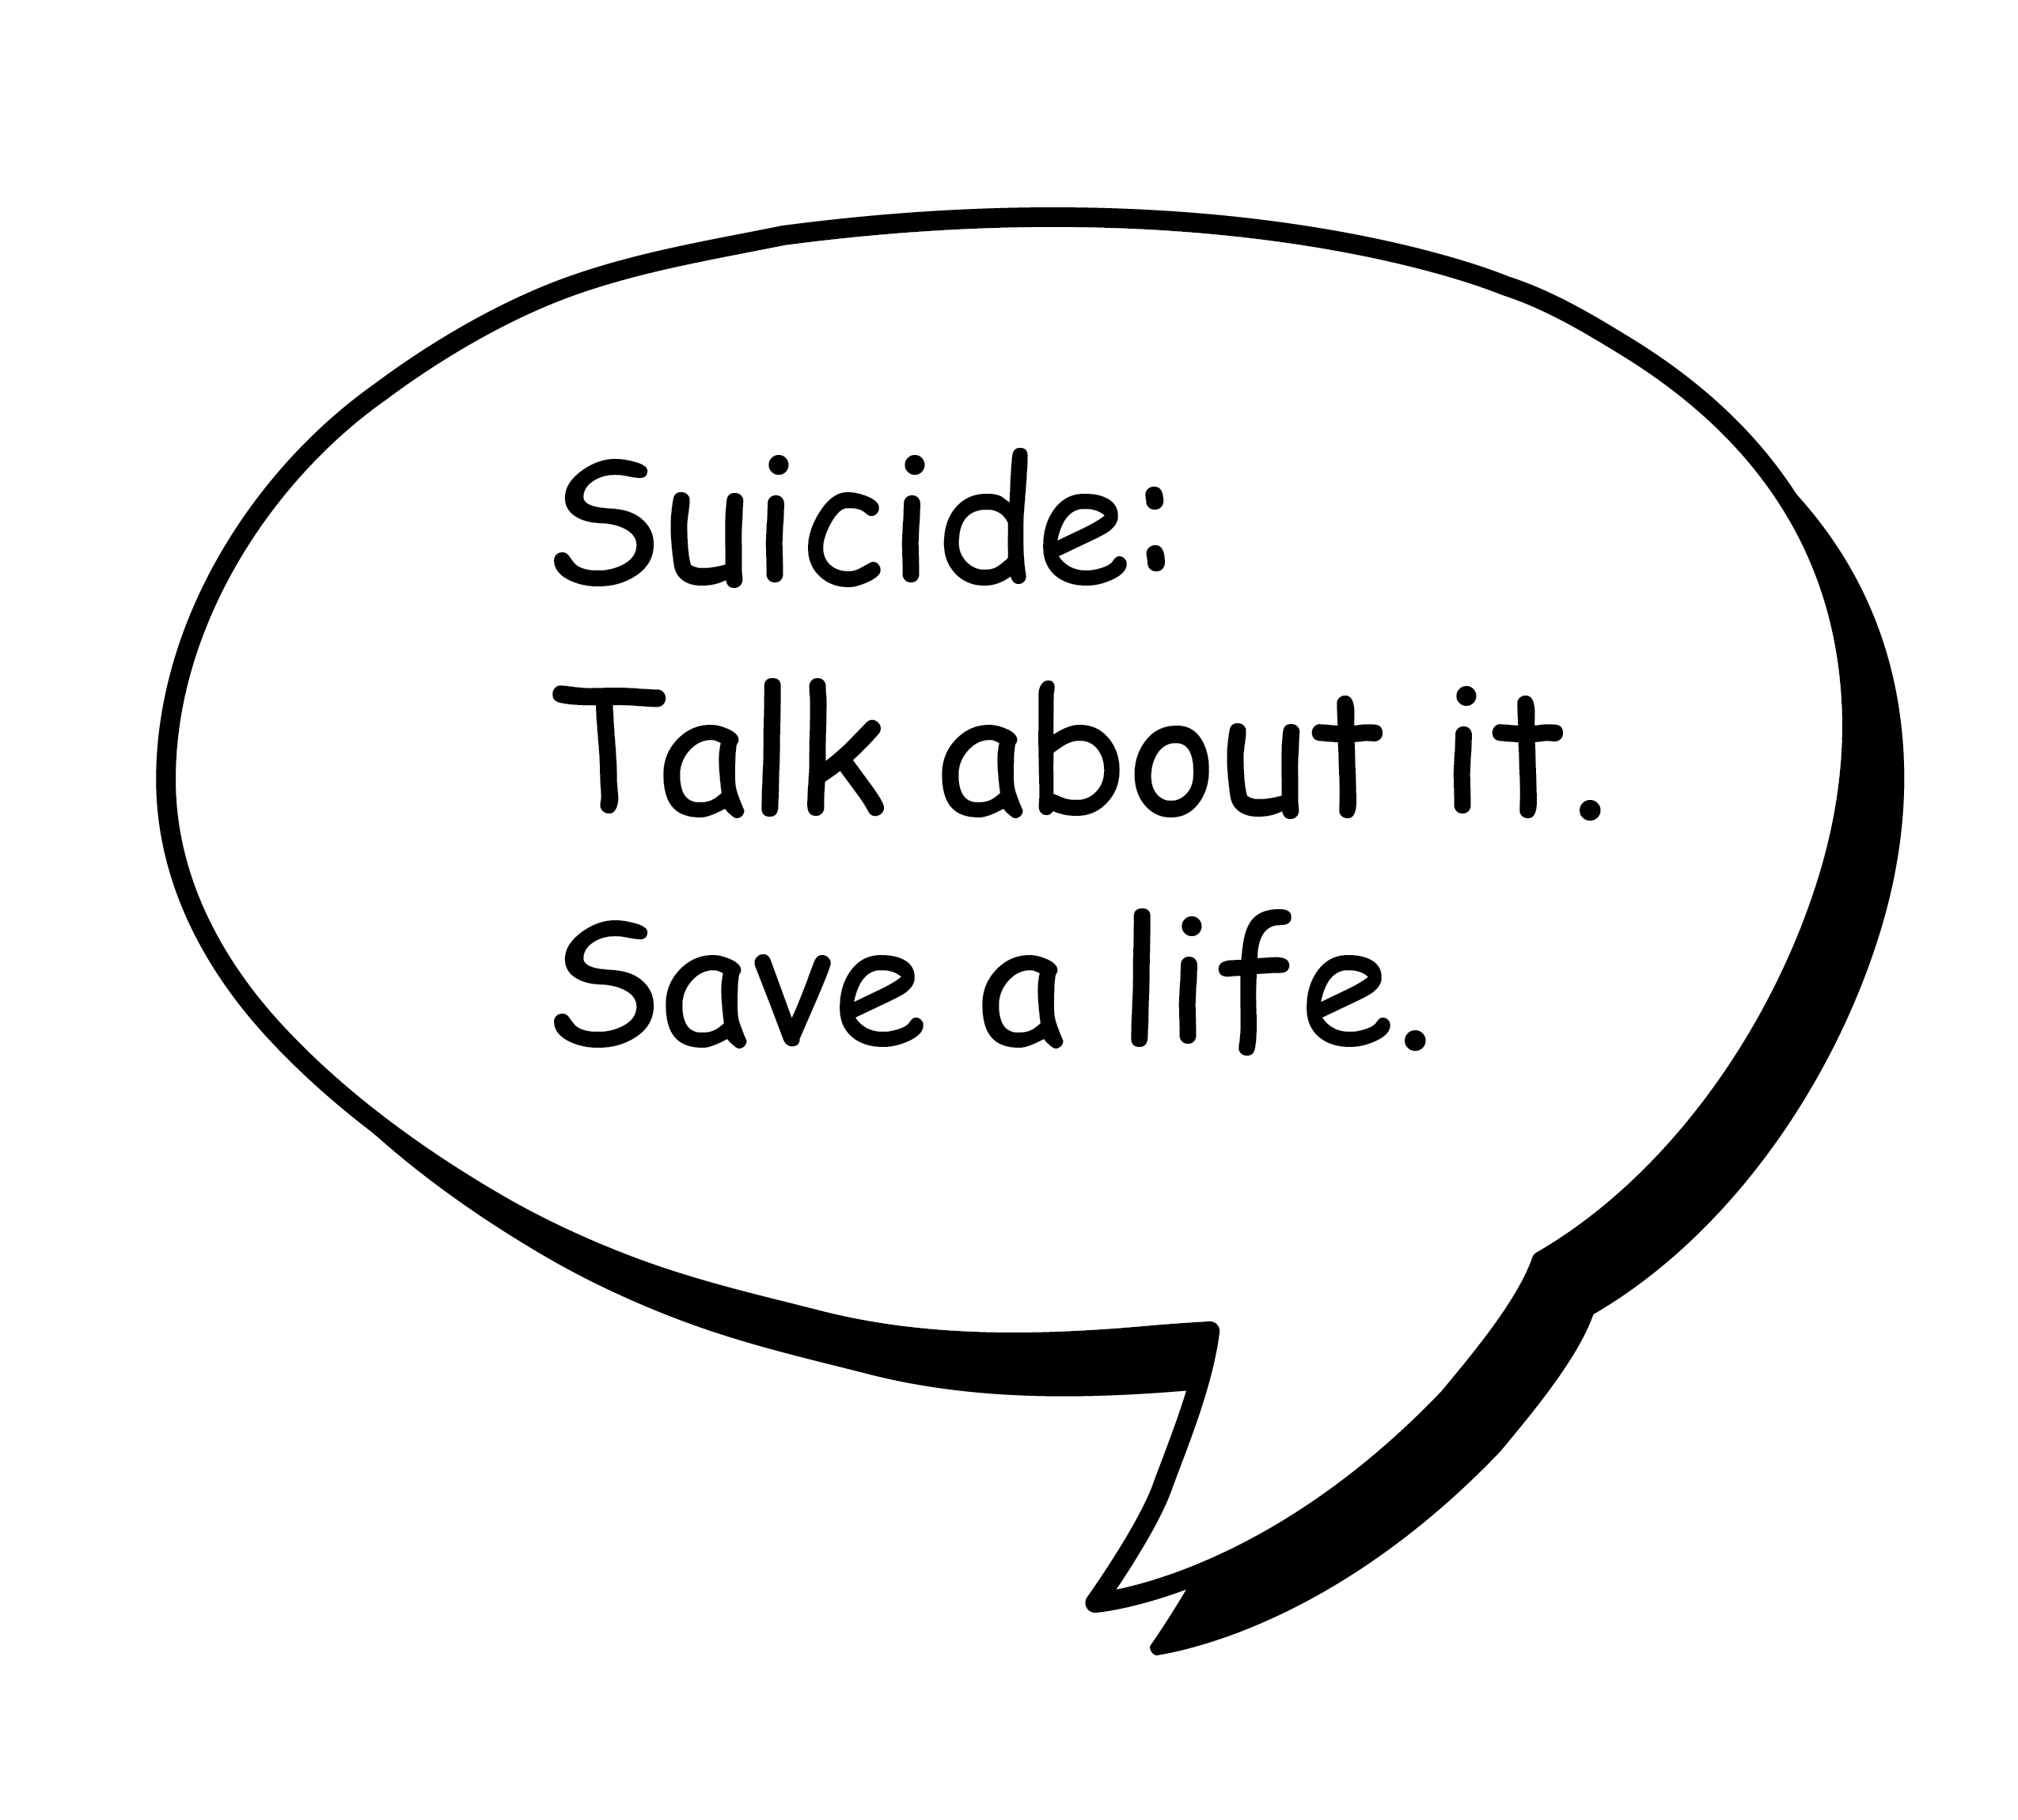 Suicide: Talk about it. Save a life.